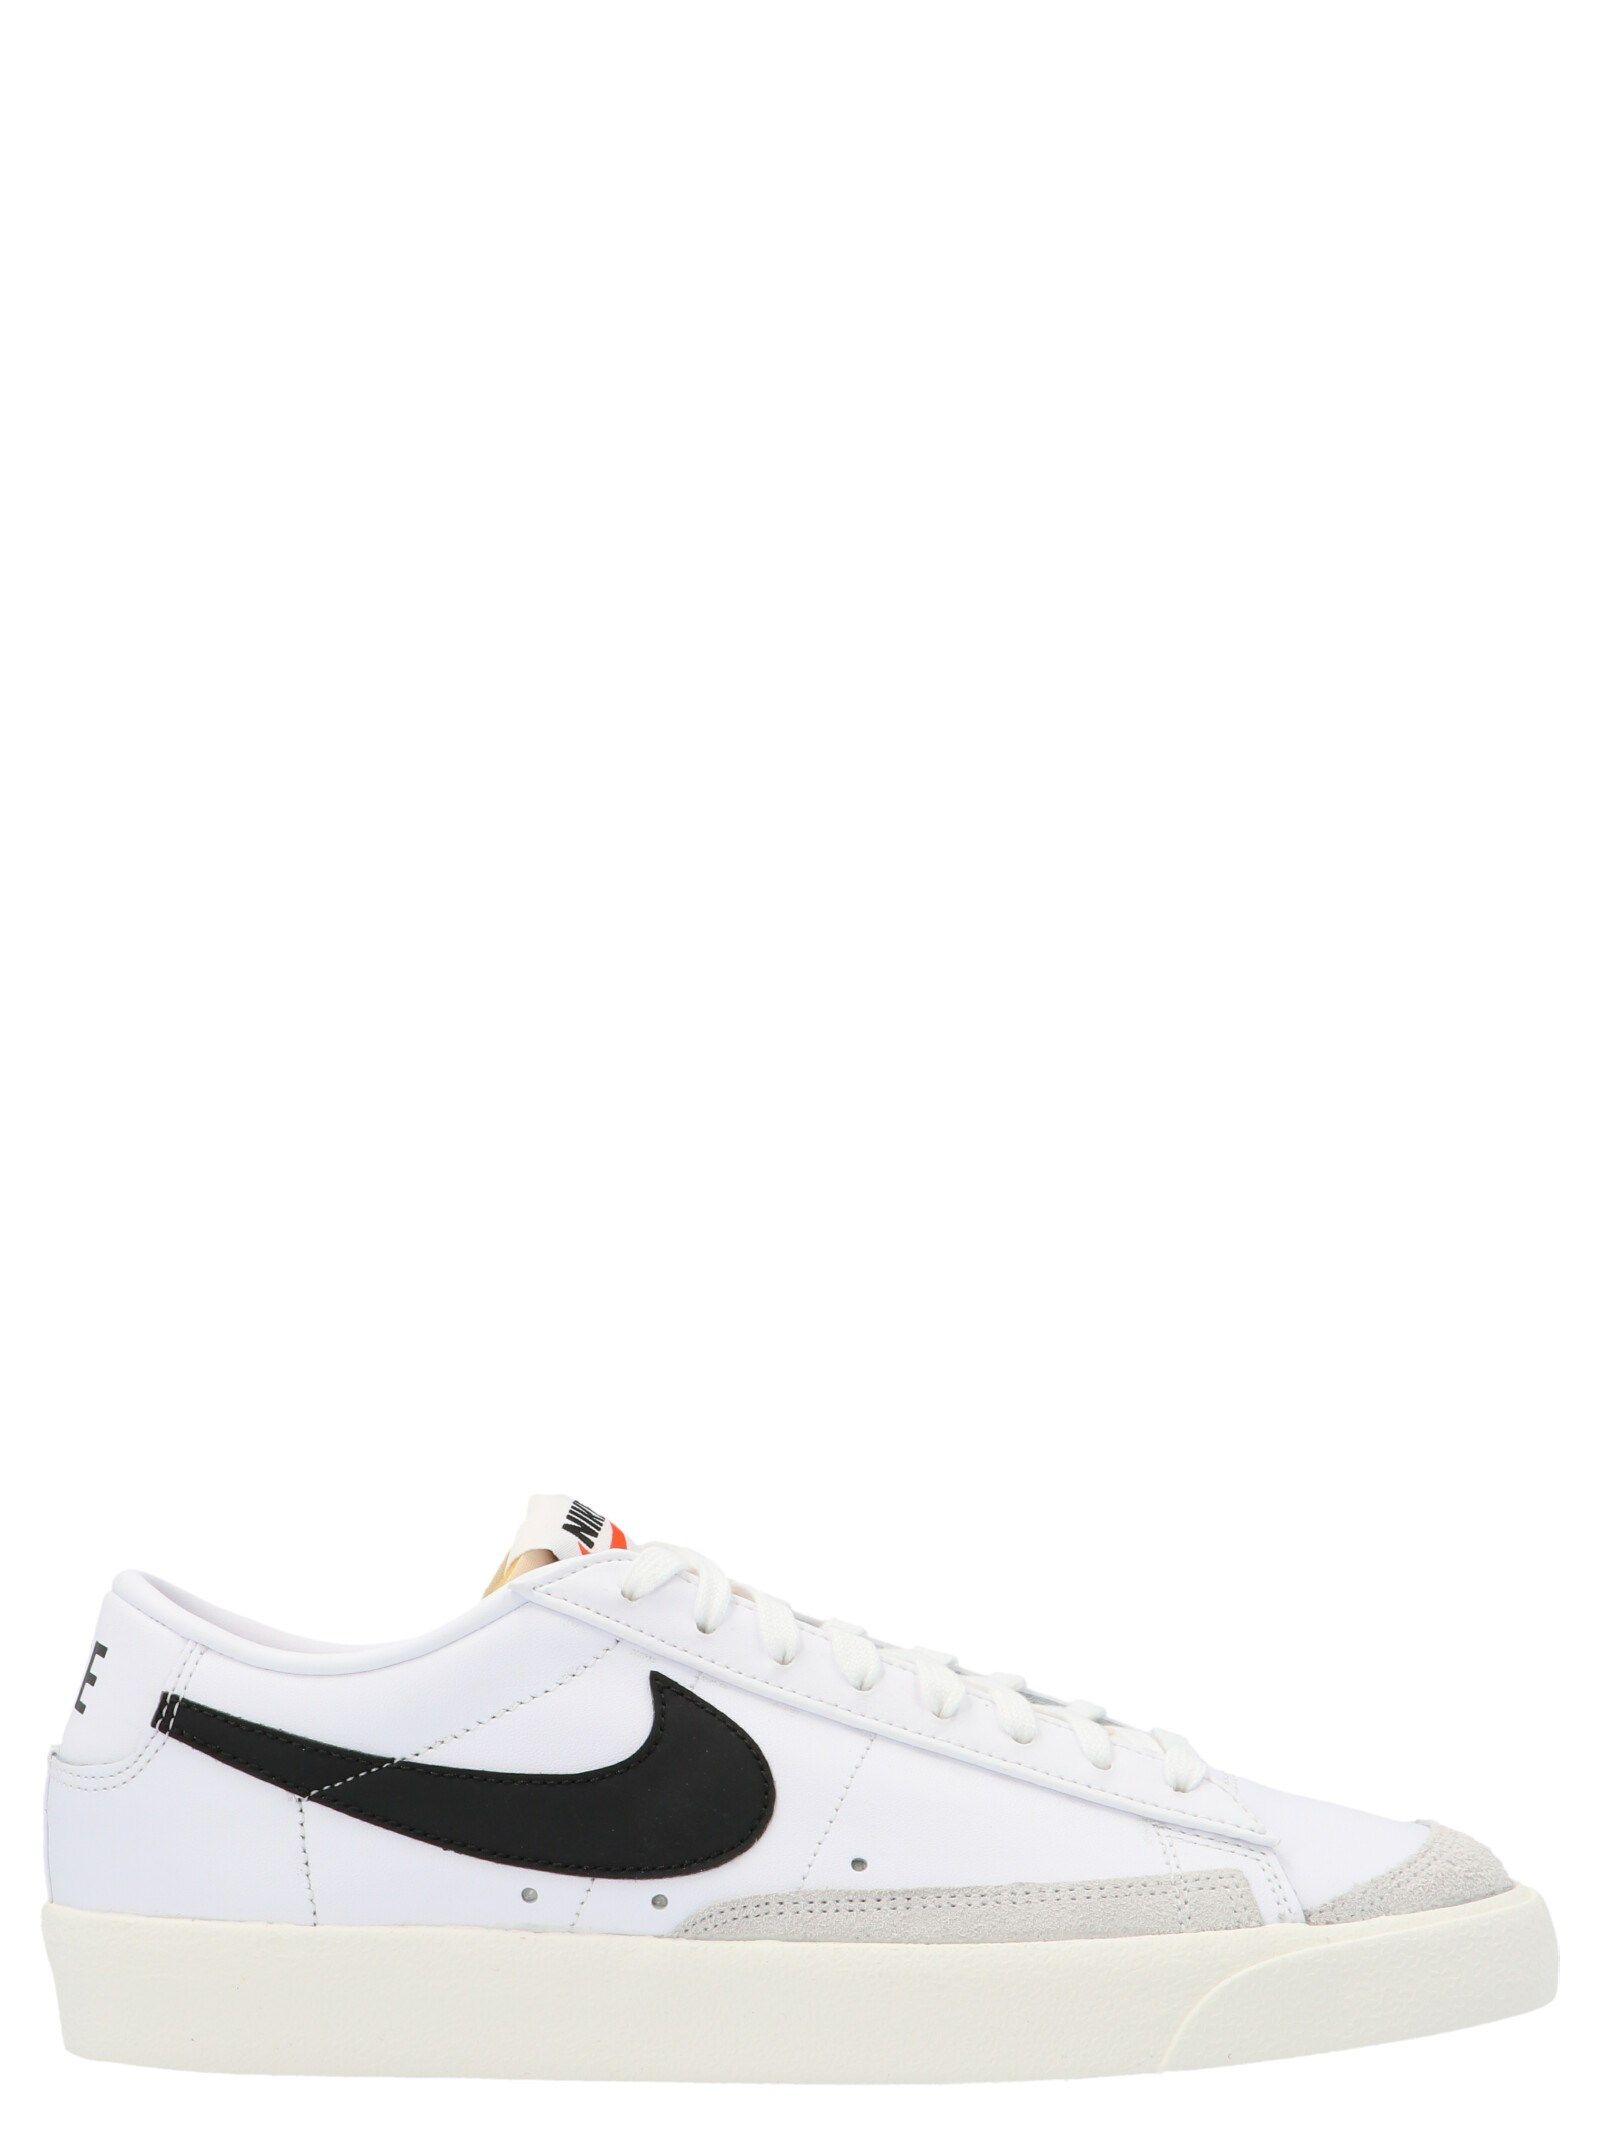 Nike NIKE MEN'S WHITE OTHER MATERIALS SNEAKERS